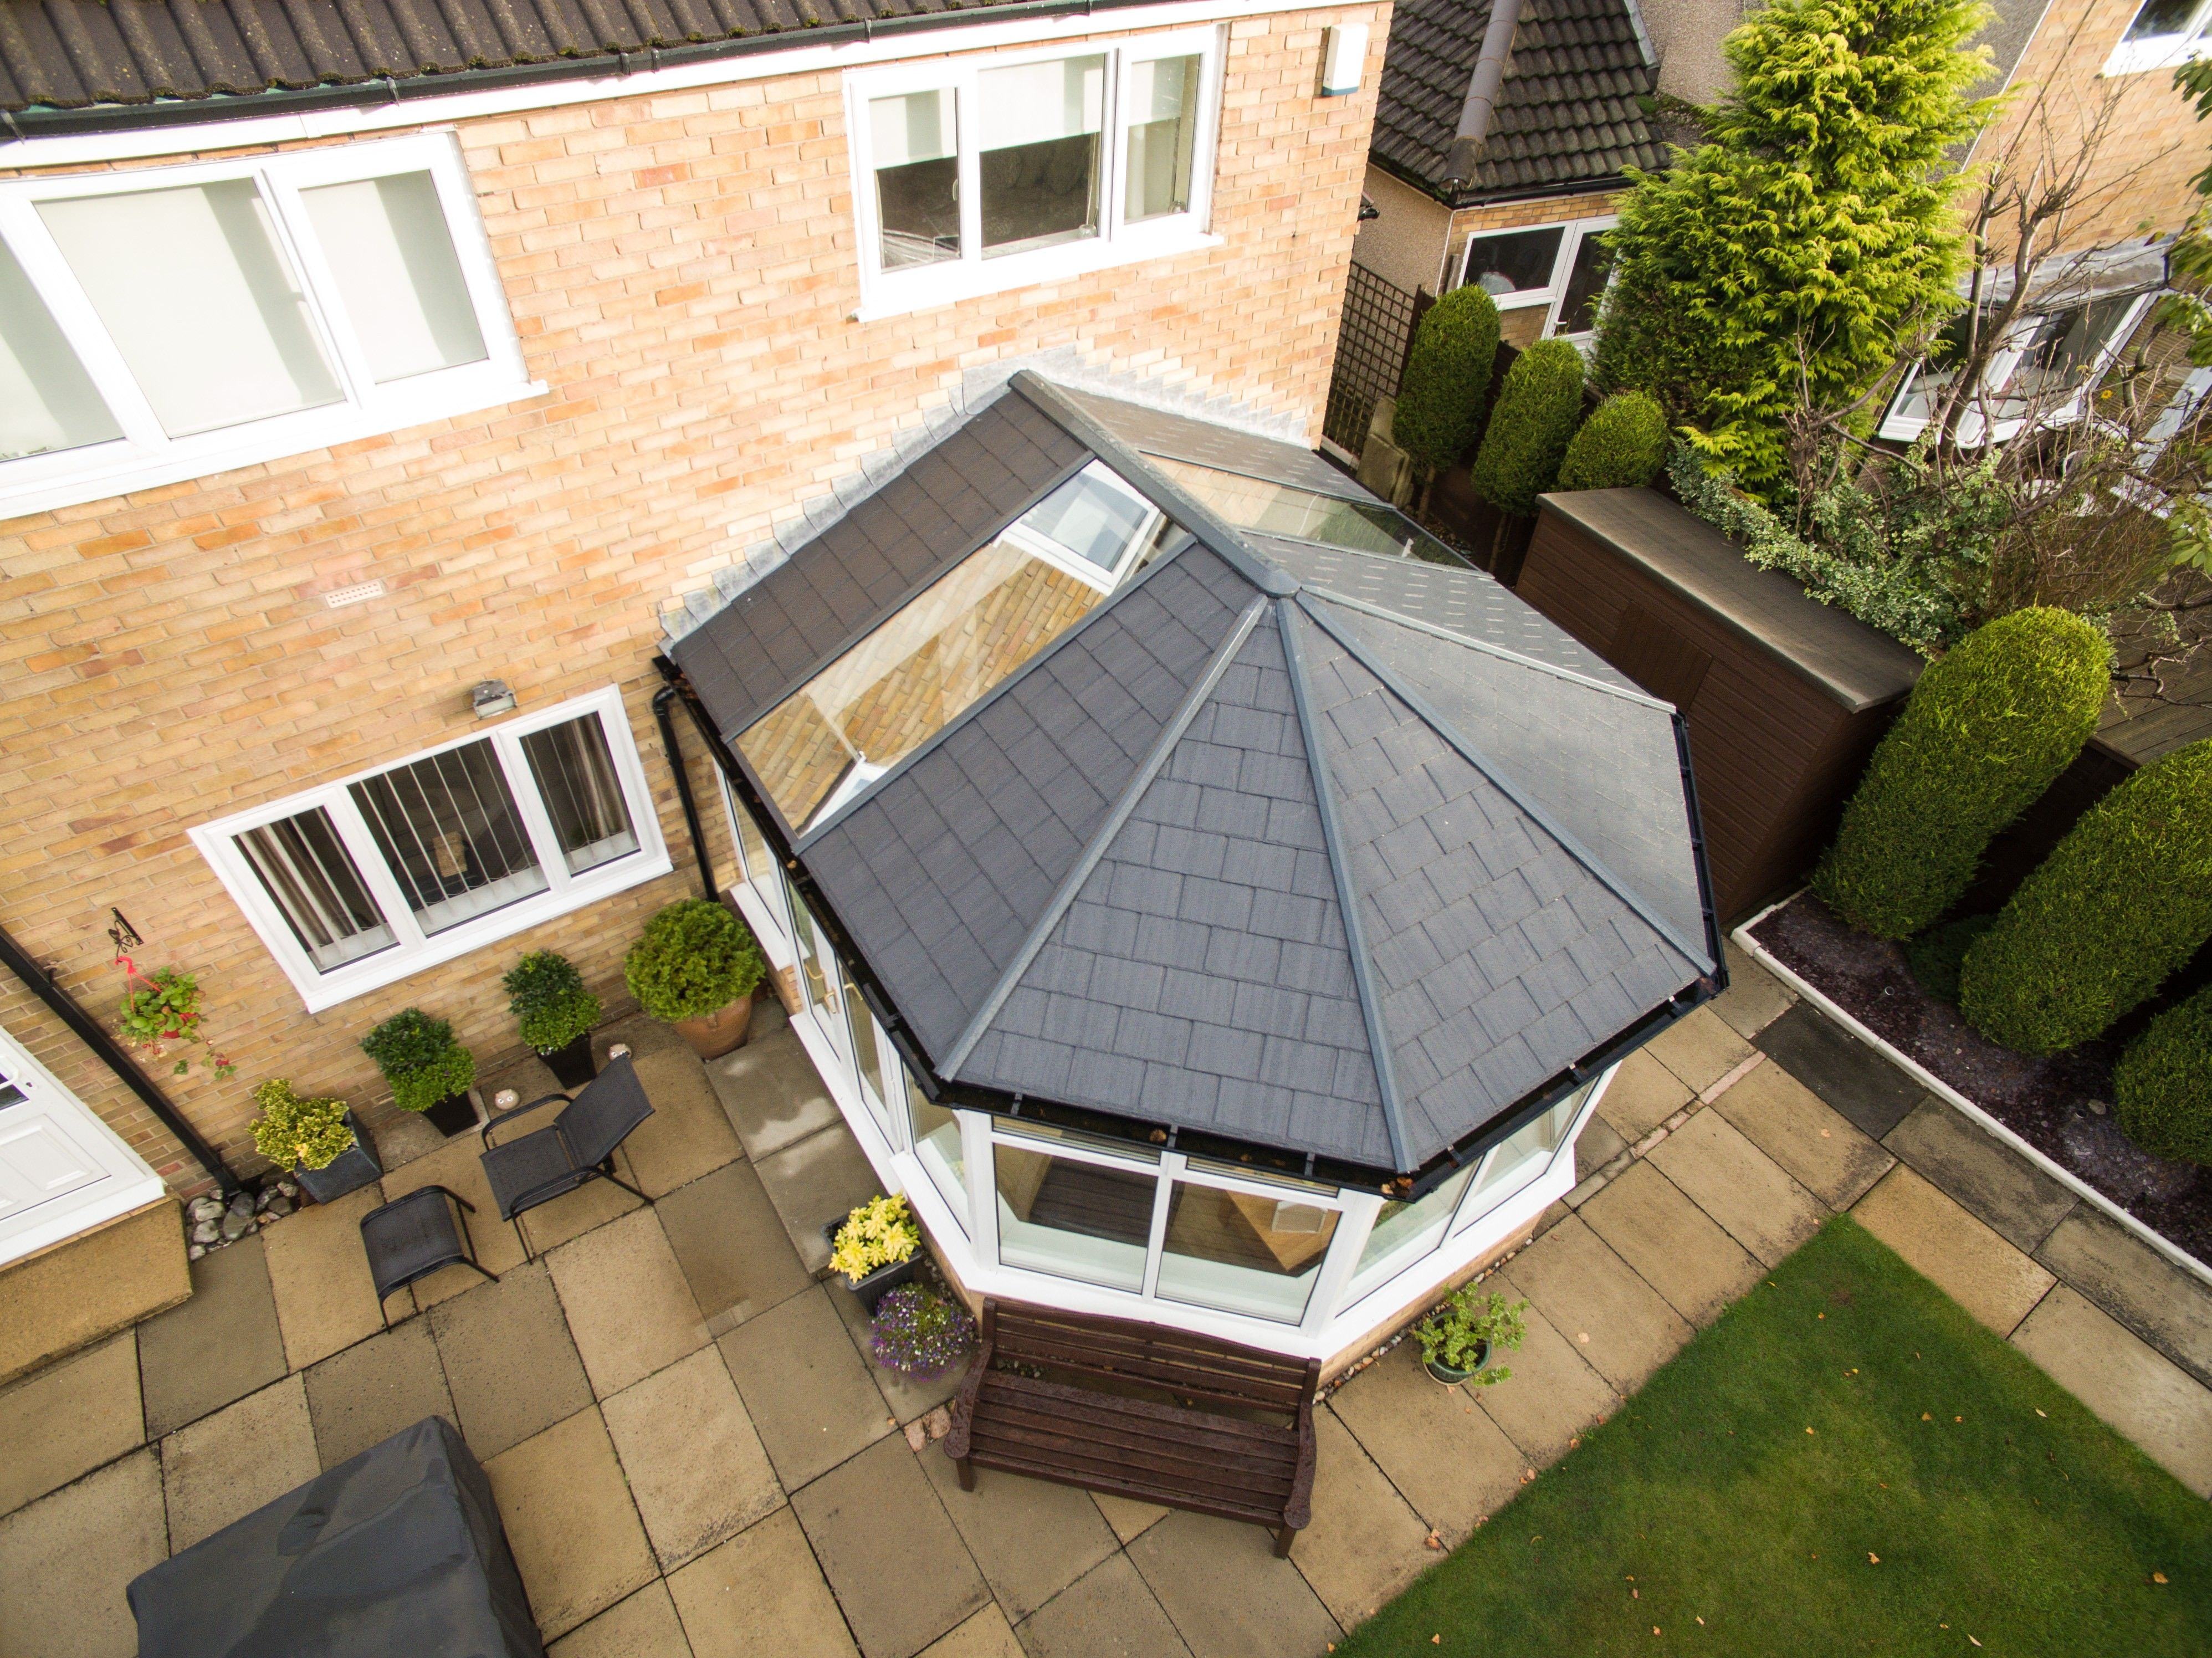 Tiled Conservatory Roofs Are Becoming A Very Popular Option For Conservatories In The U In 2020 Tiled Conservatory Roof Conservatory Roof Replacement Conservatory Roof